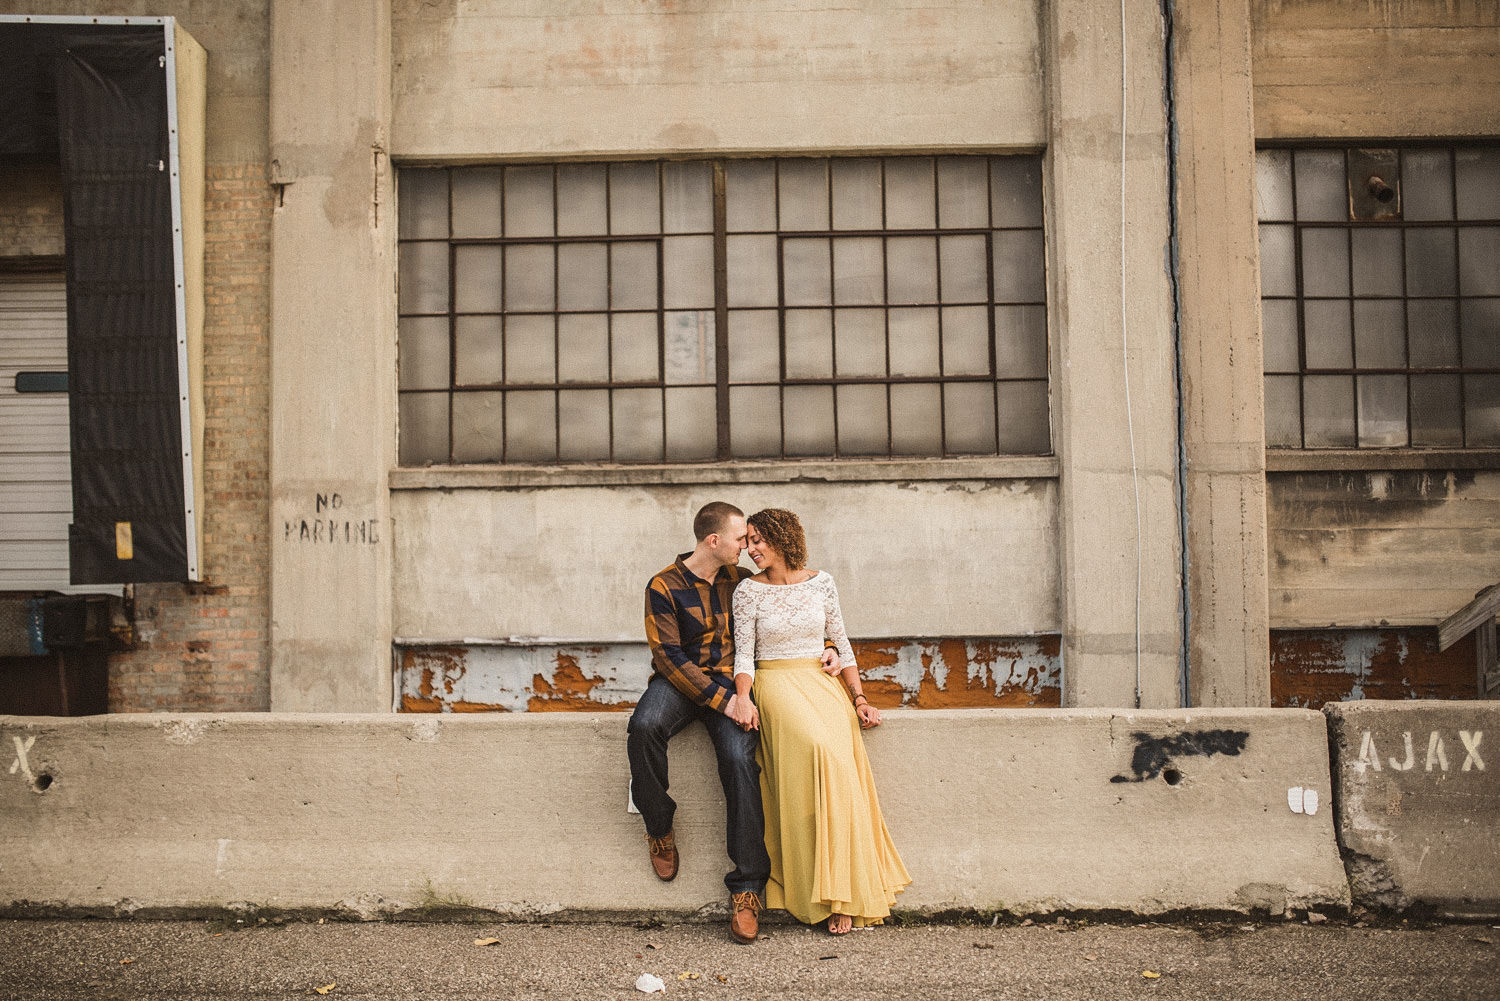 Dominique and Clay by Grand Rapids Michigan Photographer Ryan Inman - 20.jpg